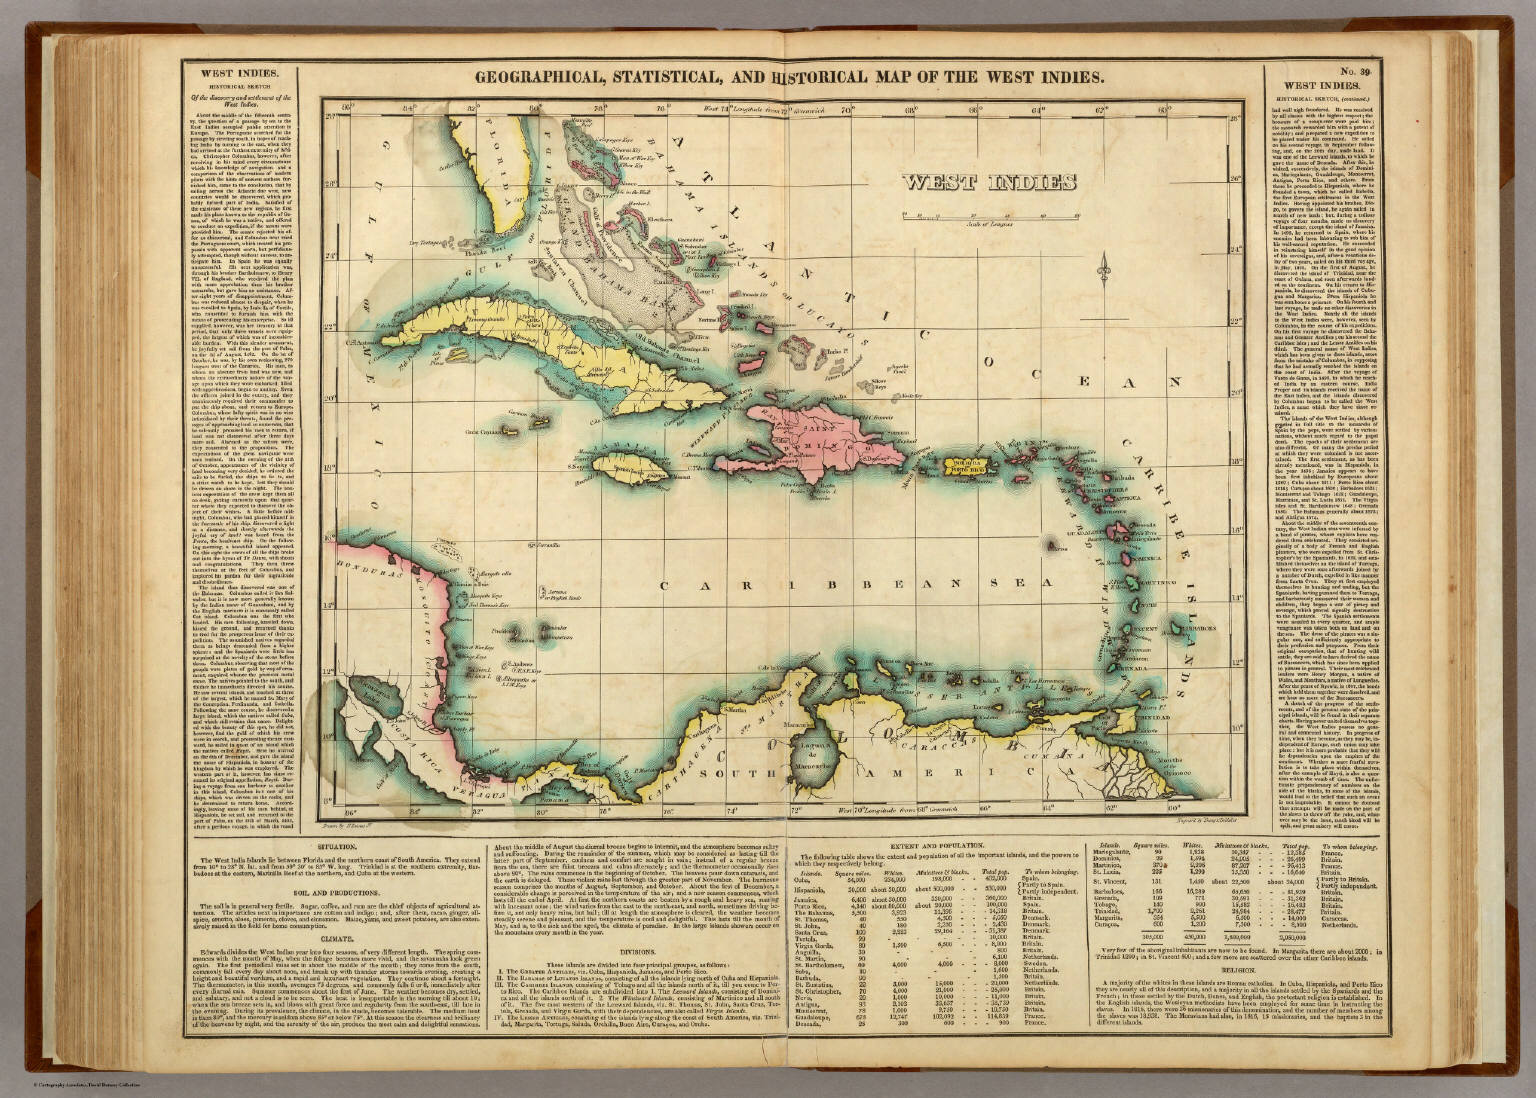 Map of the west indies david rumsey historical map collection map of the west indies gumiabroncs Image collections